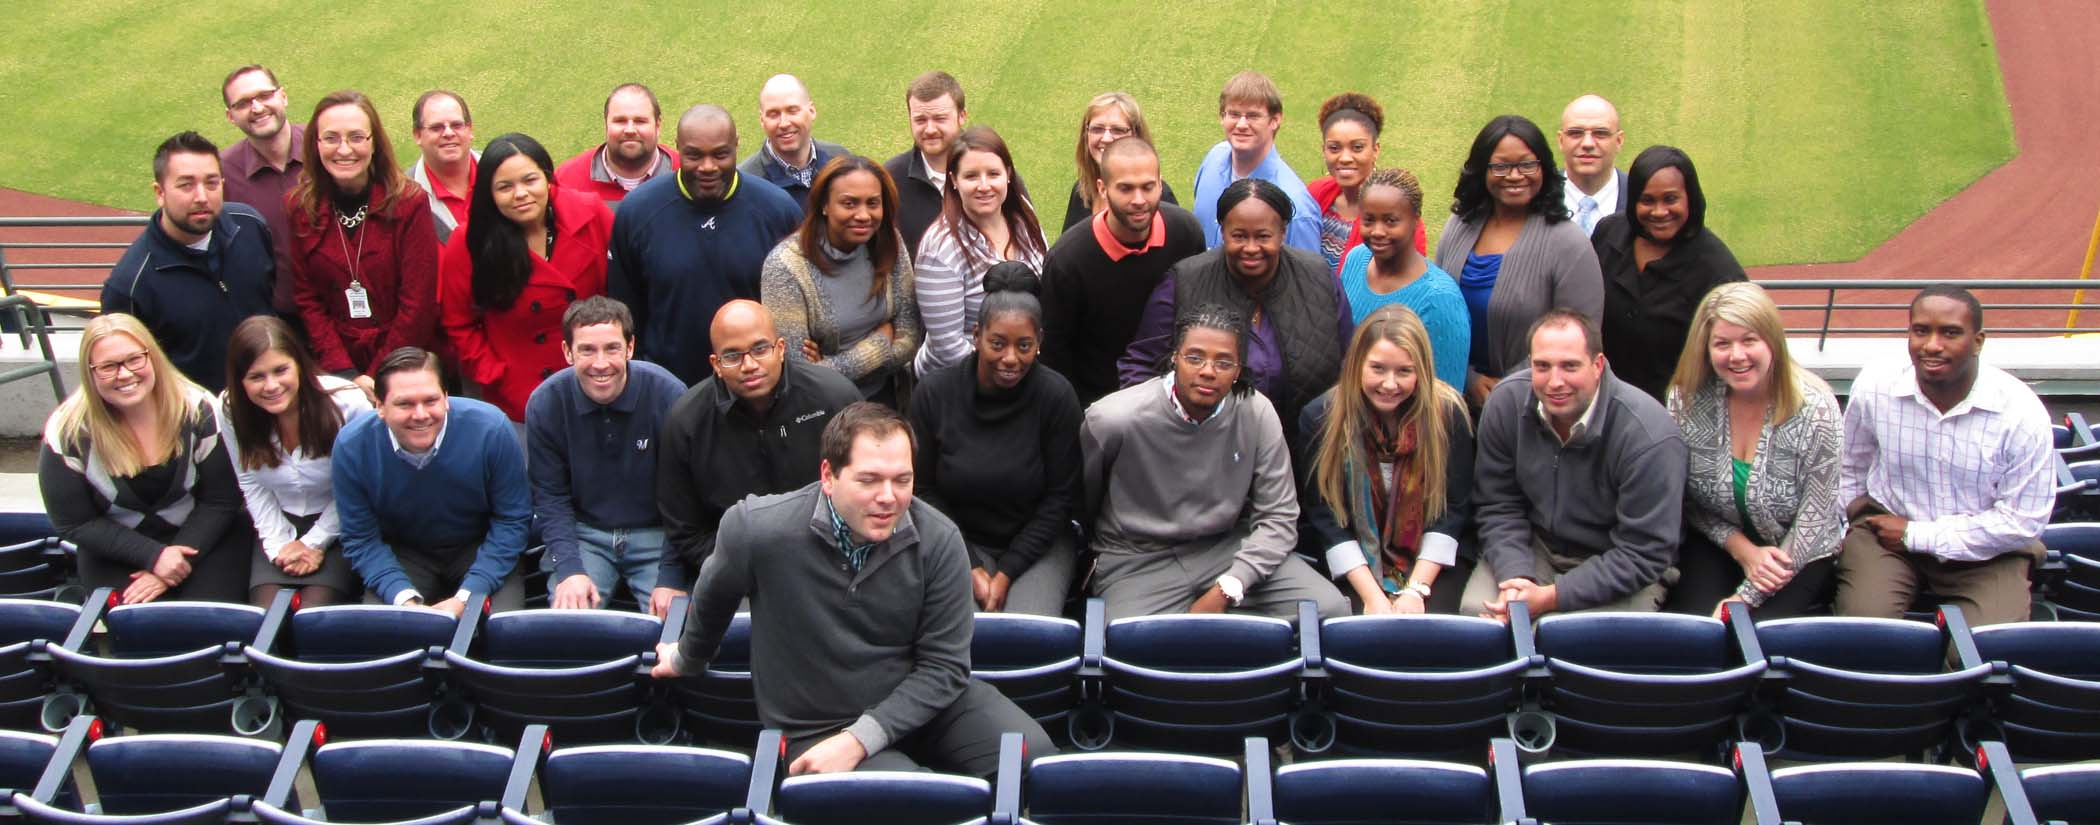 Thanks to all our IDP attendees at Turner Field!